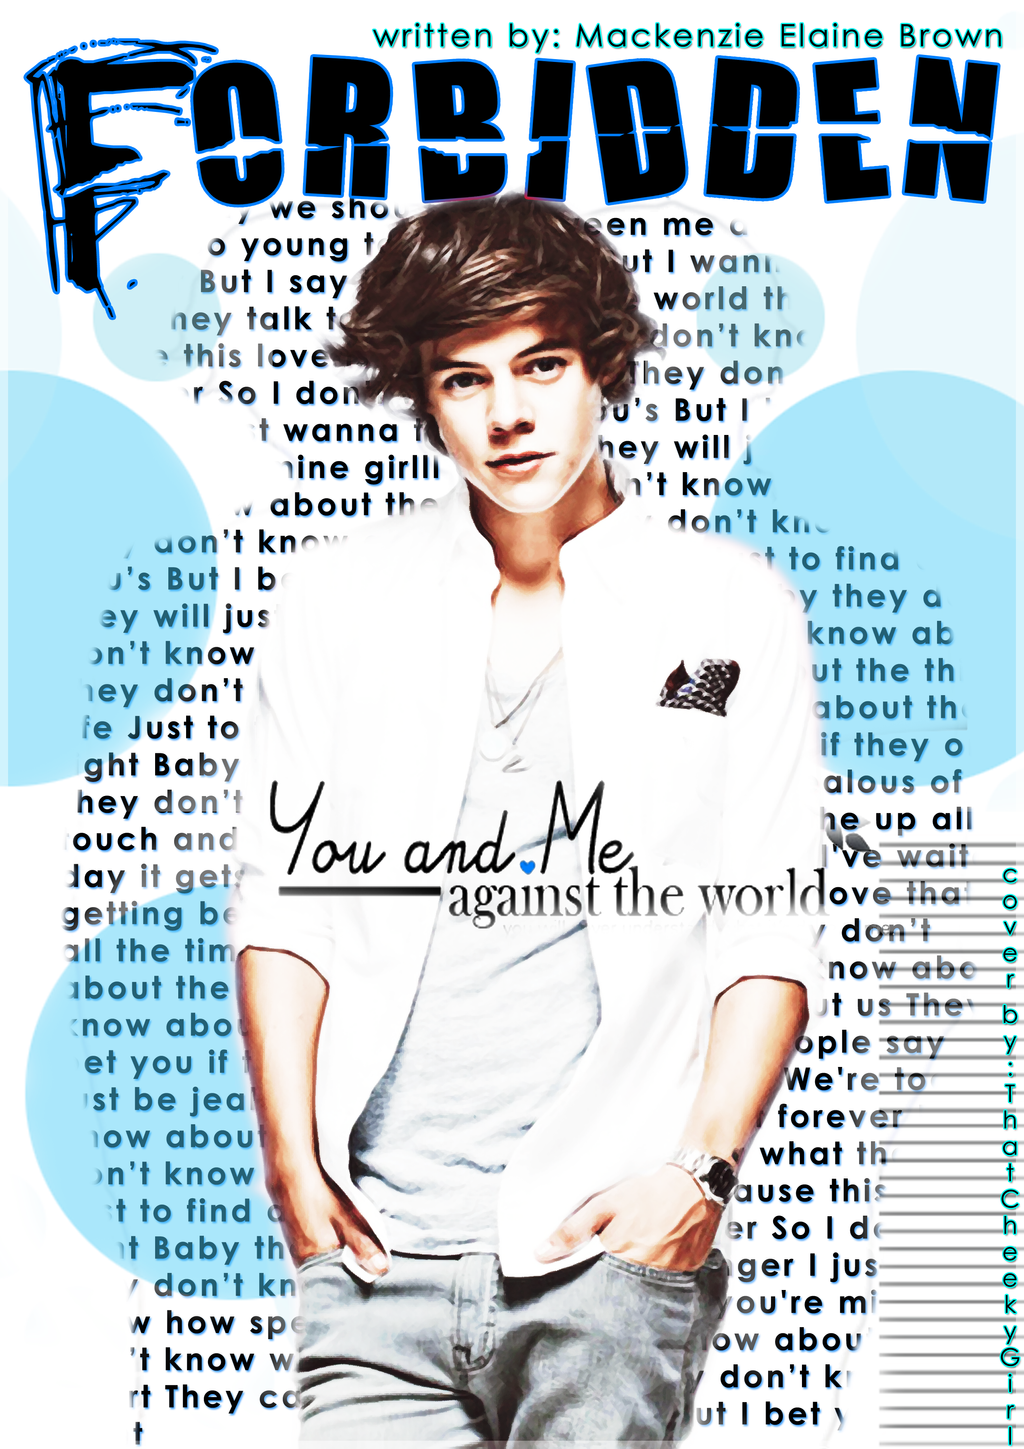 Book Cover Art Styles : Forbidden a harry styles love story e book cover by